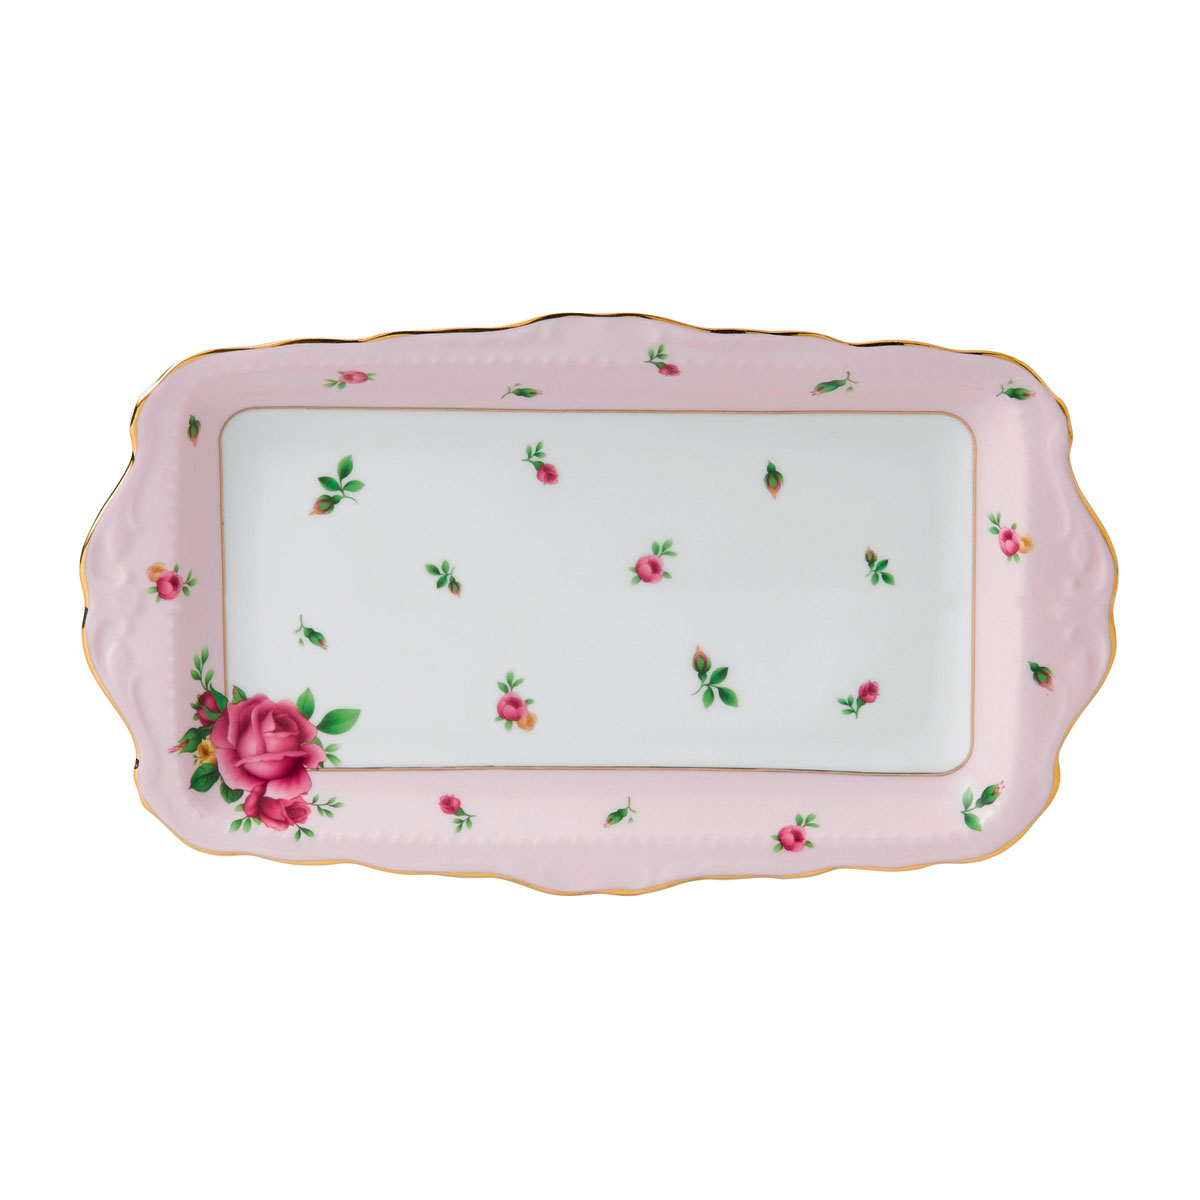 Royal Albert China New Country Roses Pink, Vintage Formal Sandwich Tray